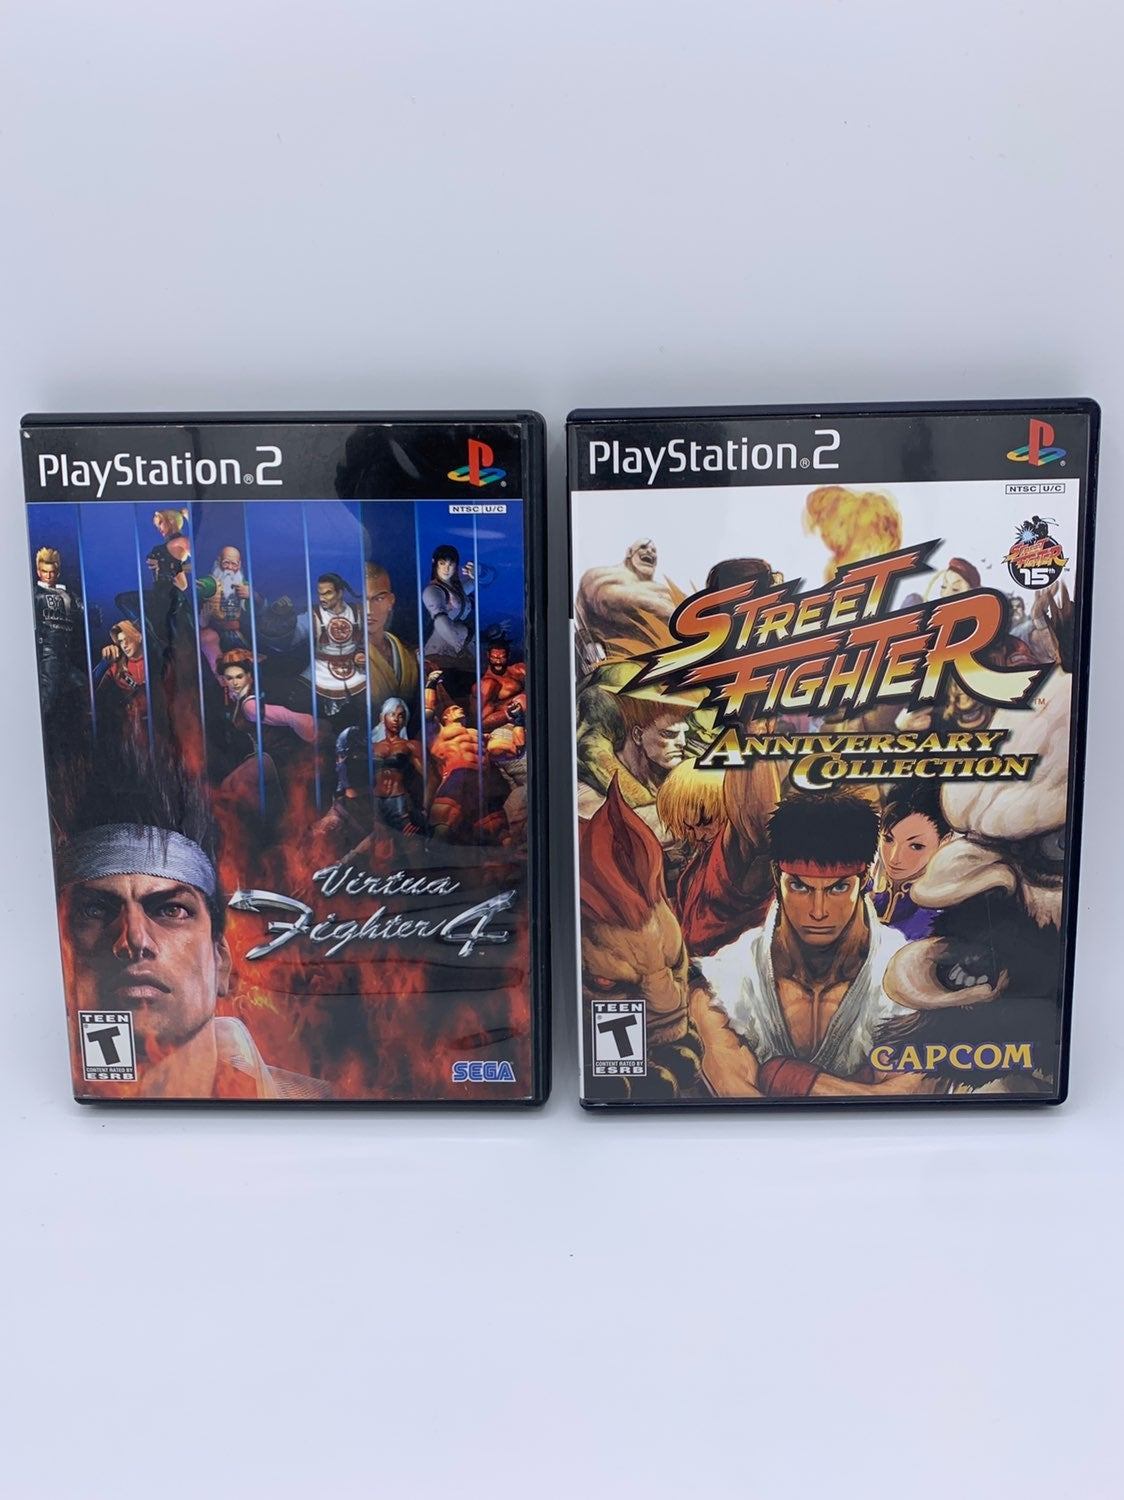 Virtua Fighter 4 & Street Fighter Anniv